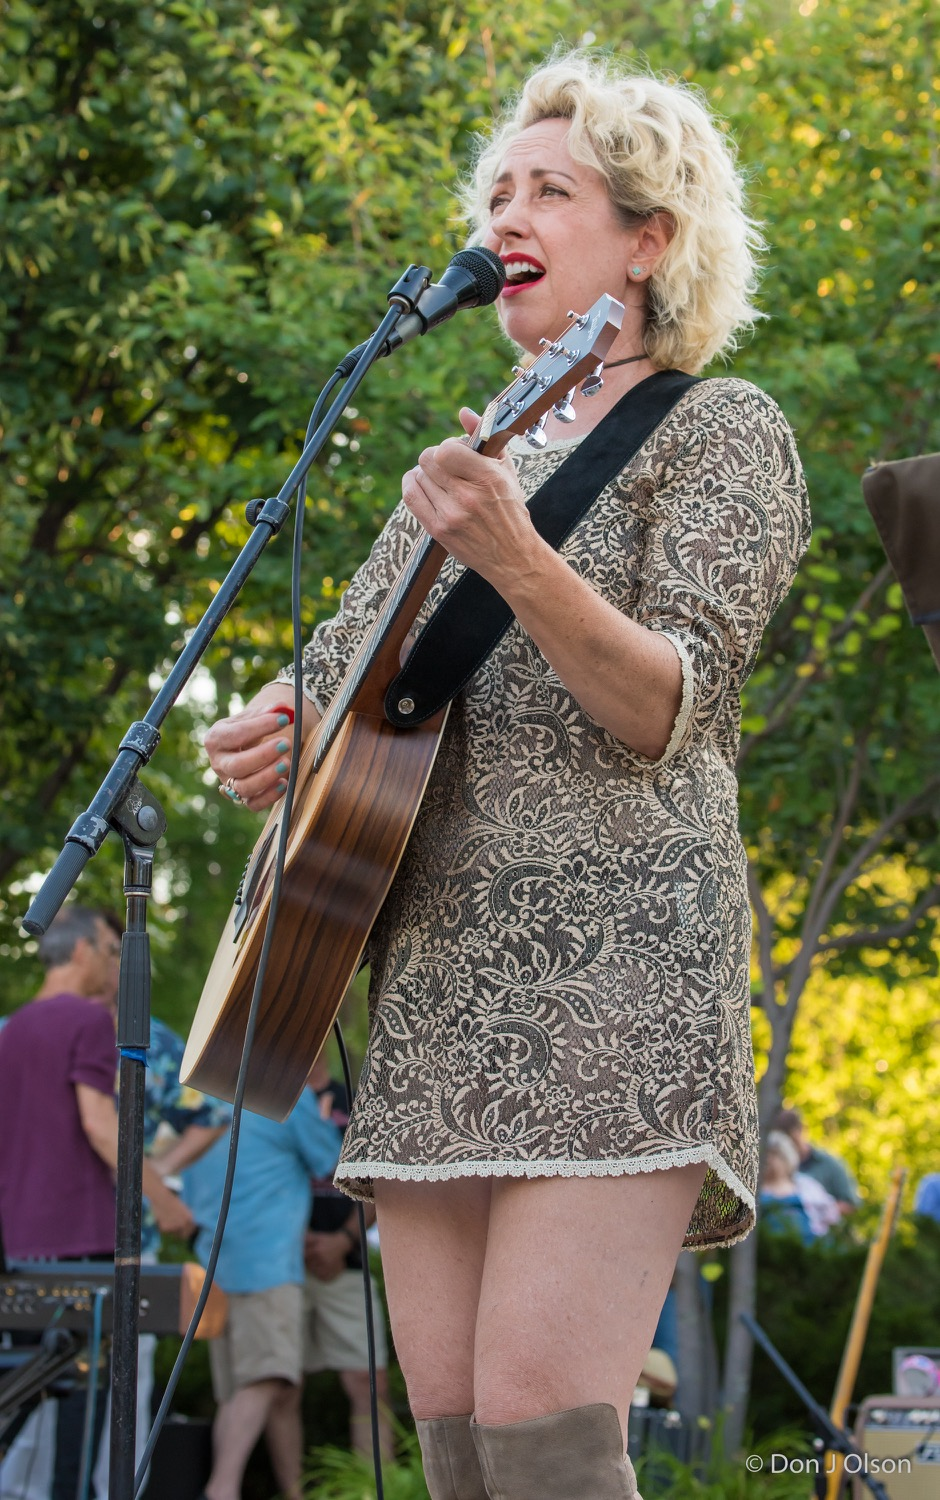 Courtney Yasmineh / The Veterans' Memorial Wolfe Park Amphitheater / St. Louis Park, Minnesota / August 1st, 2015